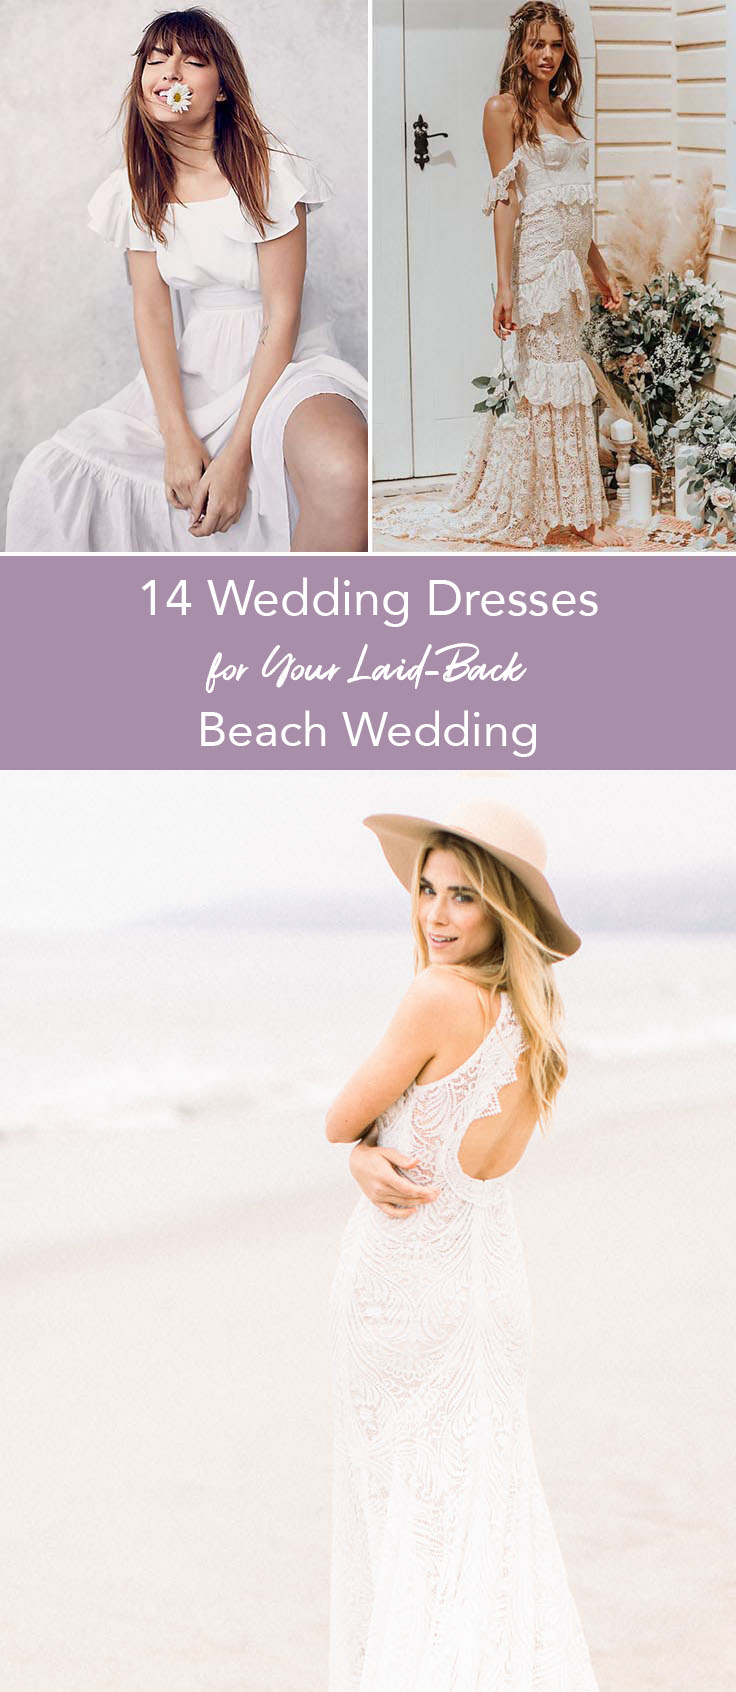 14 Wedding Dresses for your Beach Wedding